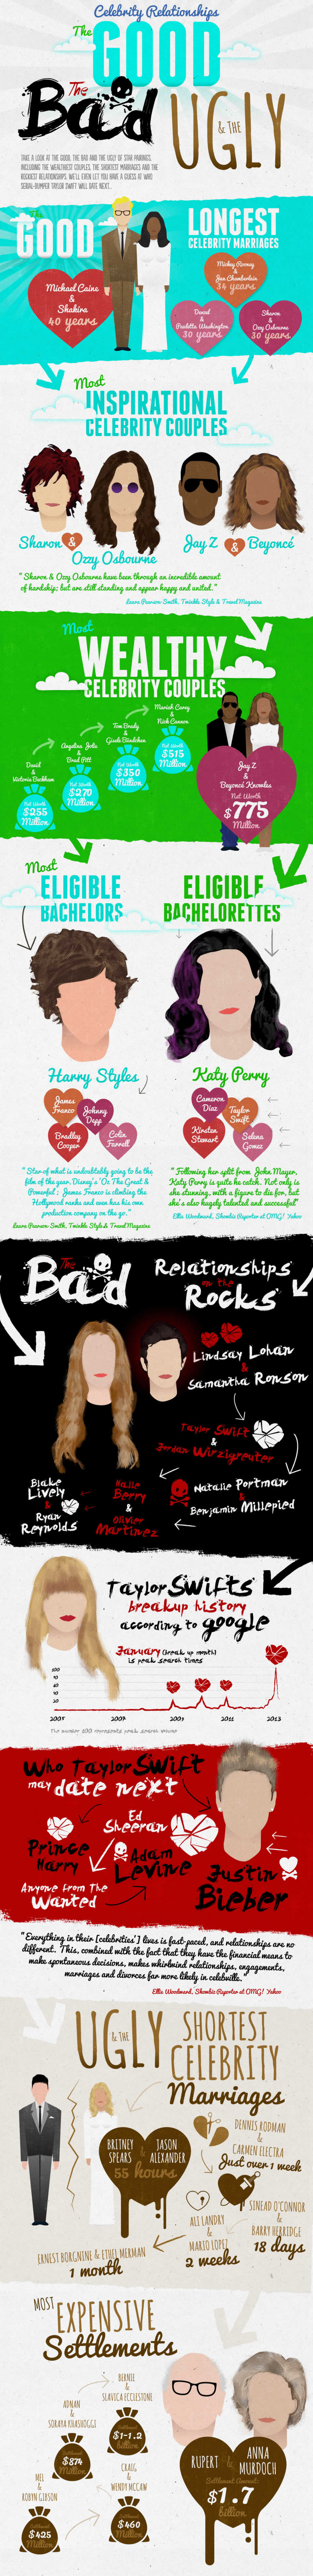 Celebrity Relationships Infographic